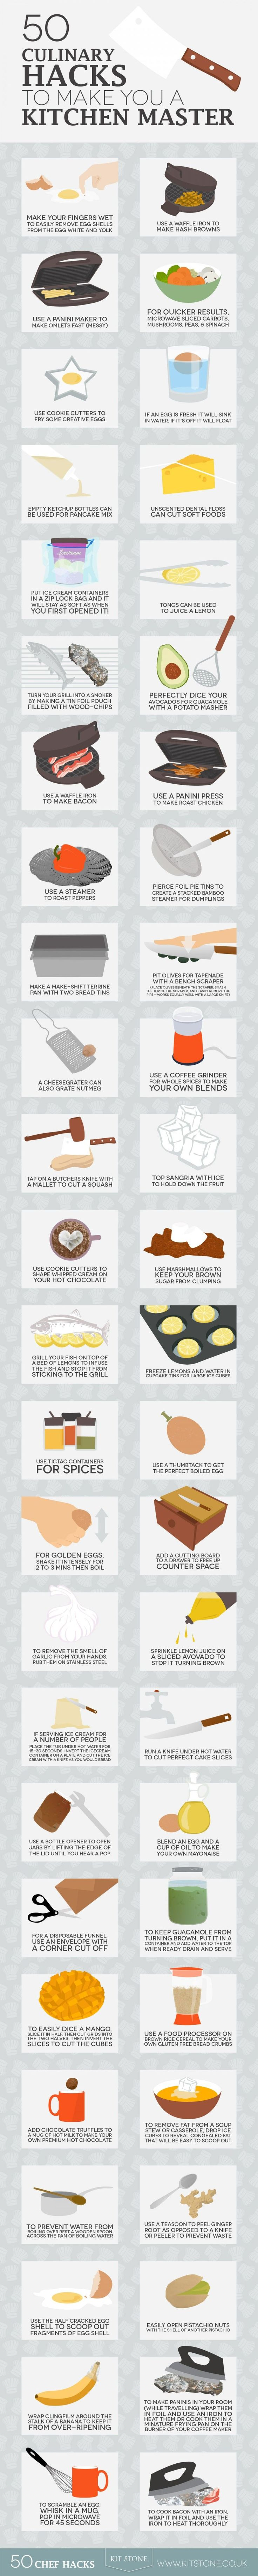 """50 Culinary Hacks to Make You a Kitchen Master"" Infographic Turns You Into a Viable 'Top Chef' Contender"